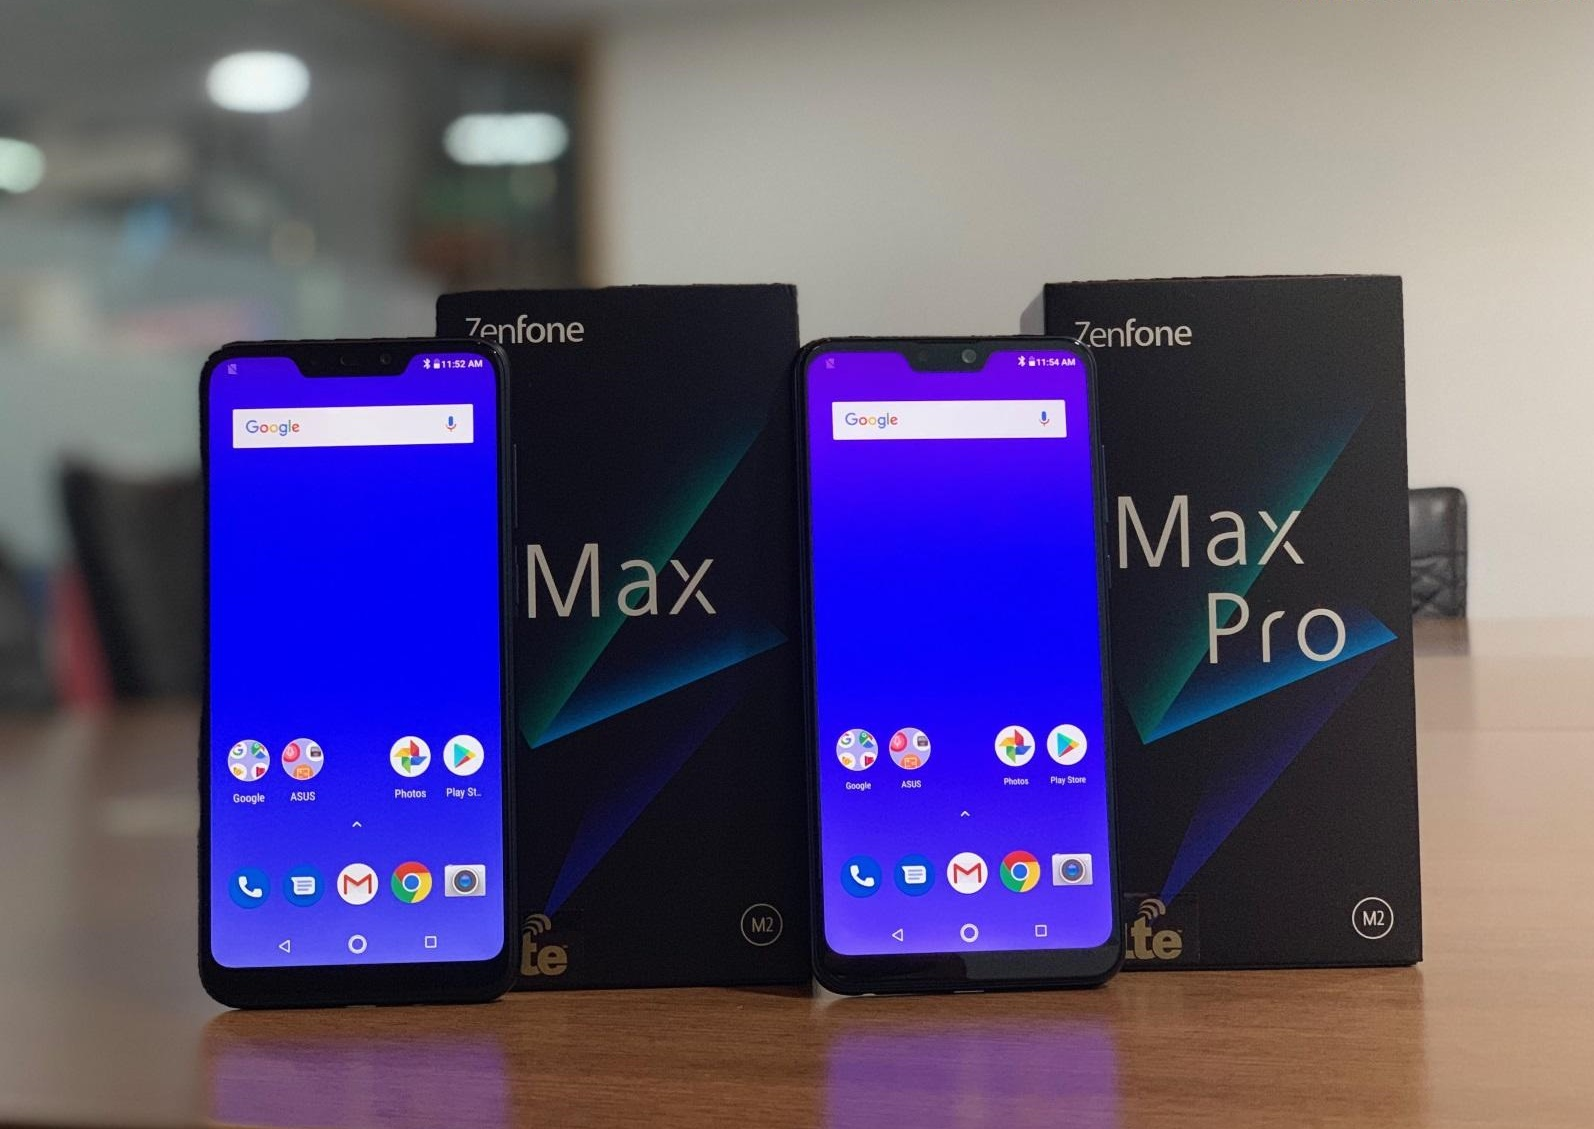 Learn about the newer Asus phones asus Zenfone Max M2 and Asus Zenfone Max Pro M2